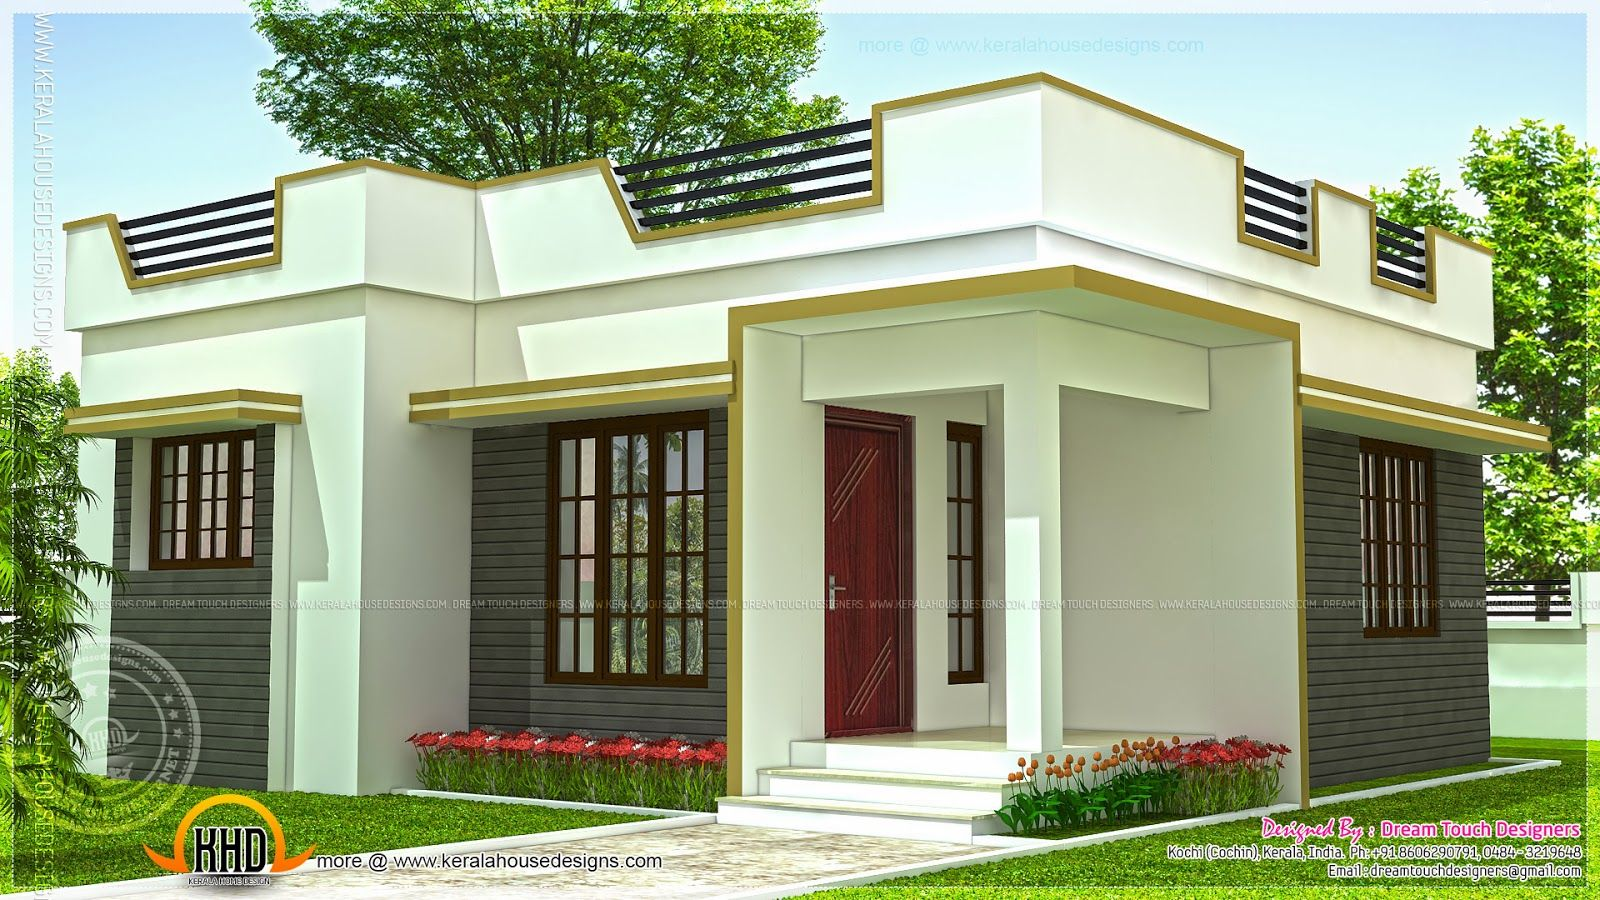 Lately 21 small house design kerala small house for Small house design plans in india image